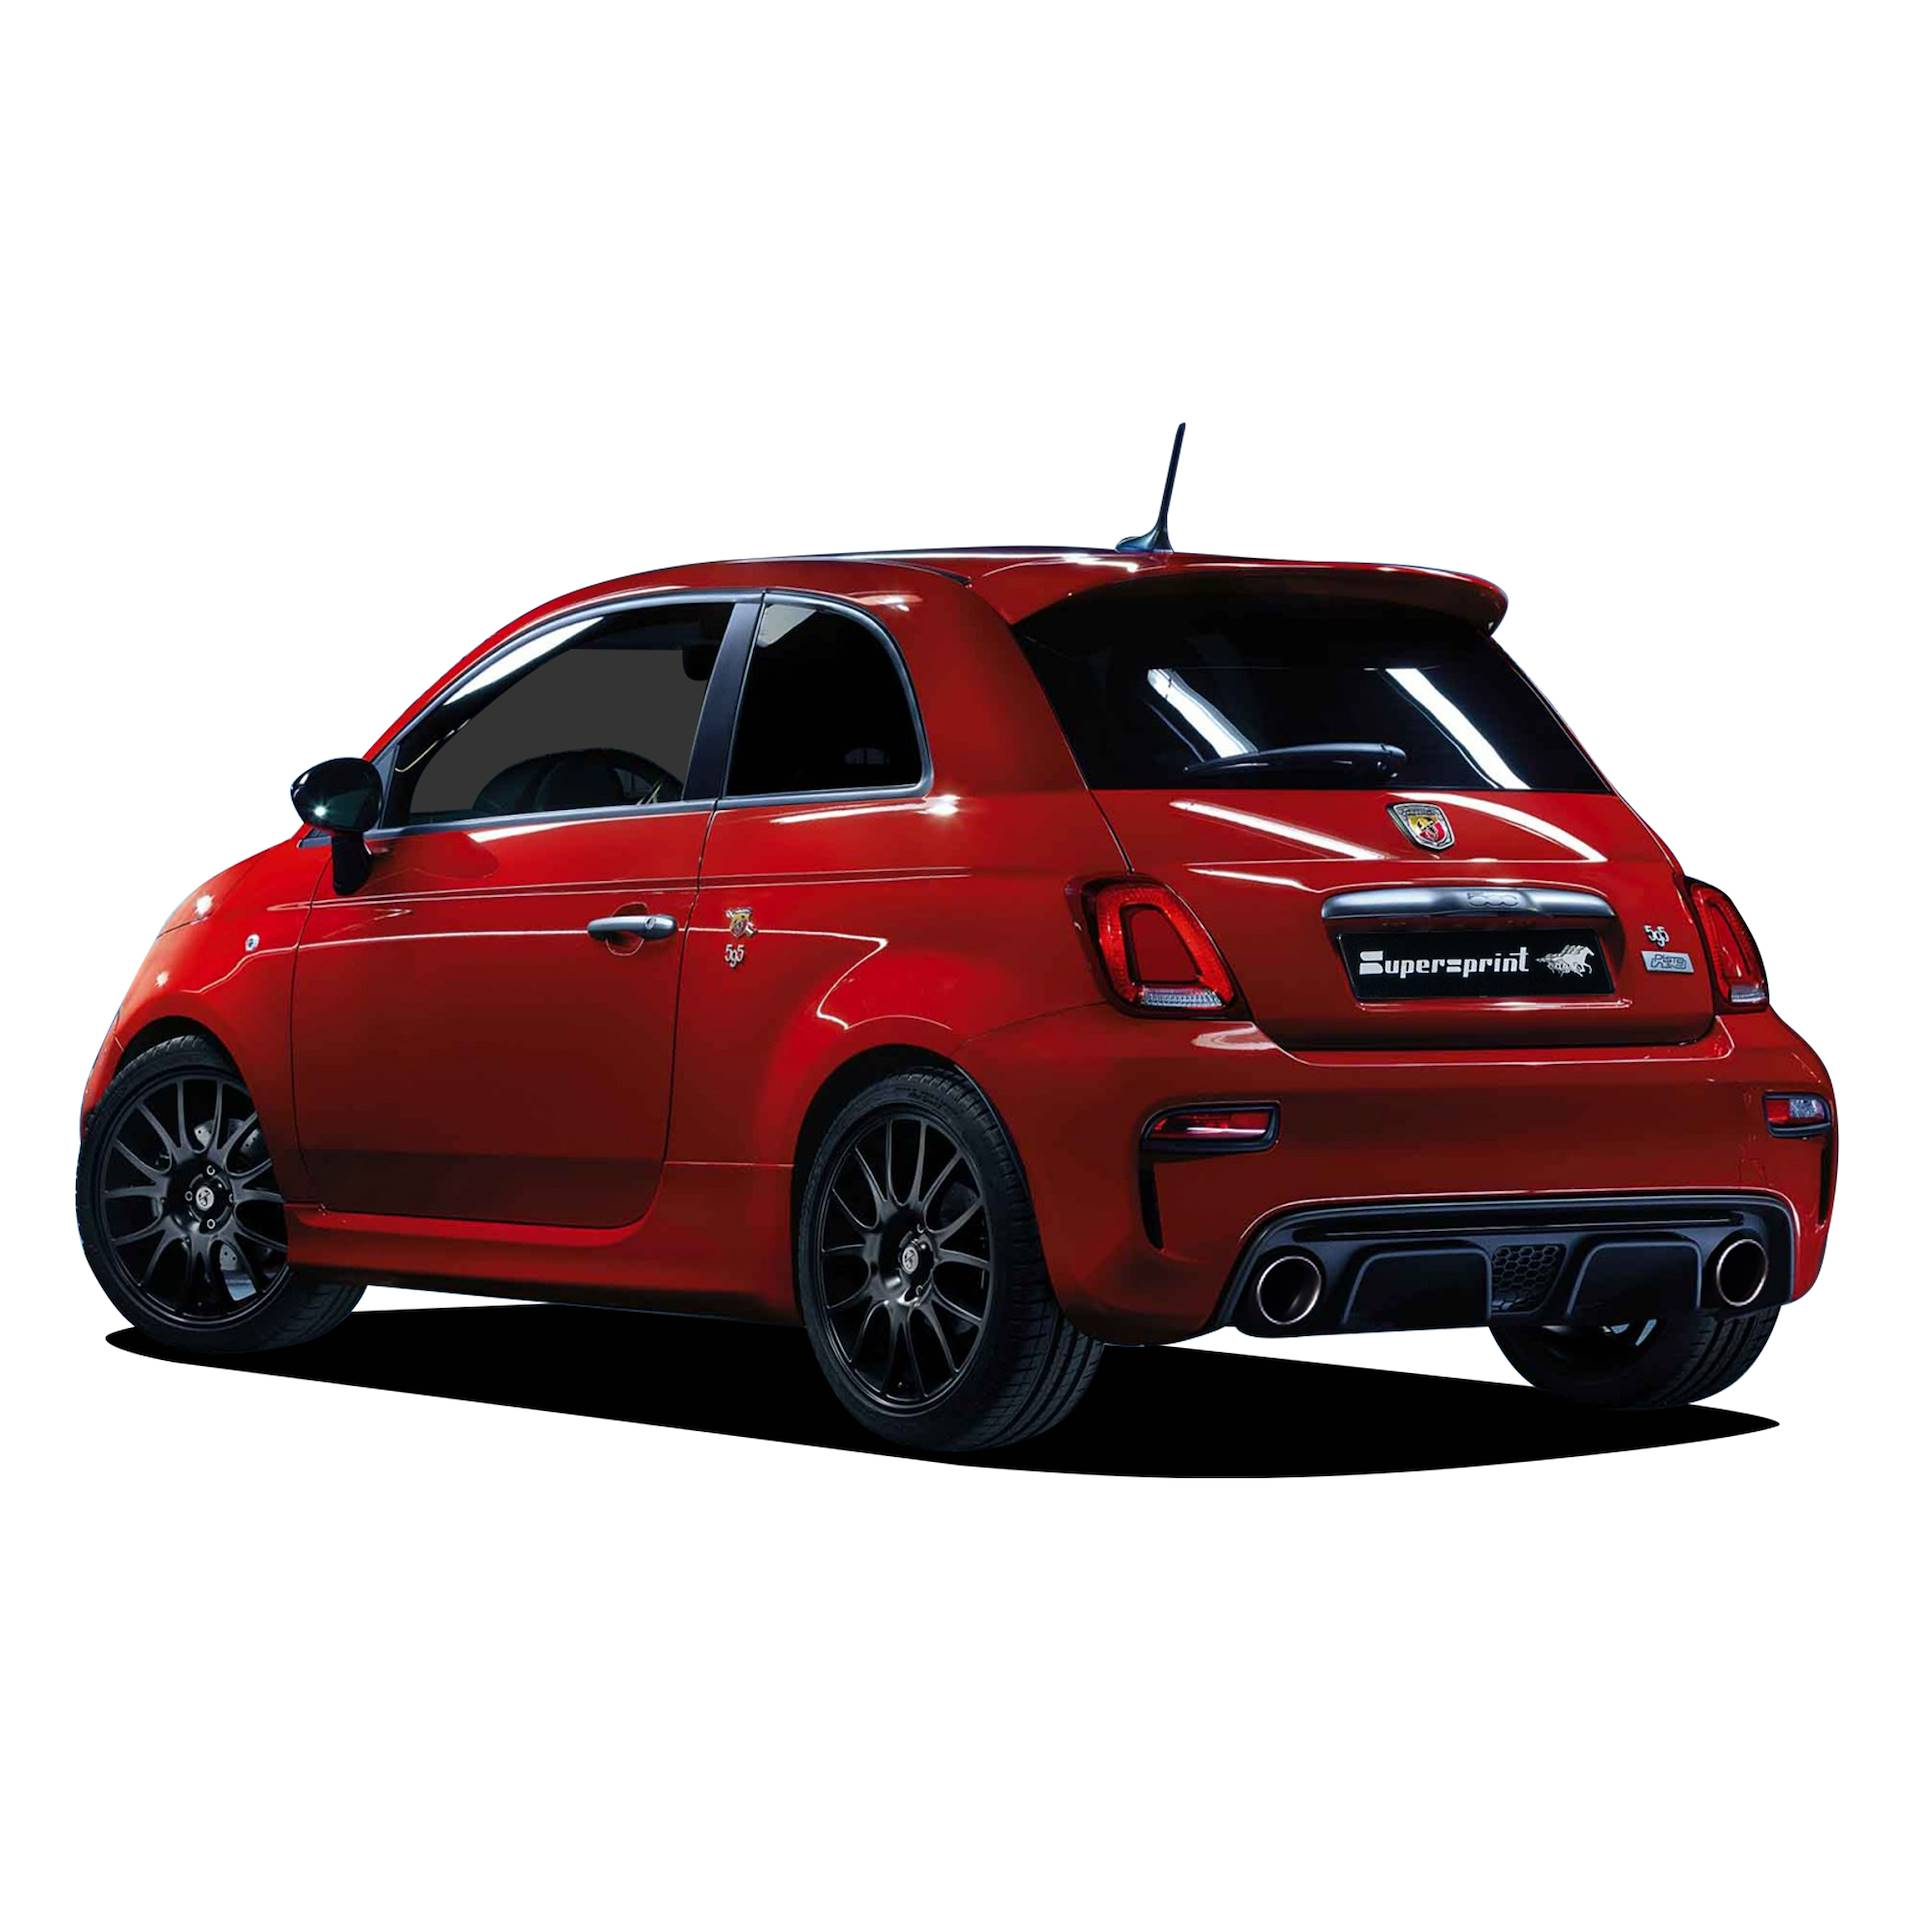 "595 ABARTH 1.4T ""Pista"" Coupè / Cabrio (160 Hp) 2016 ->"